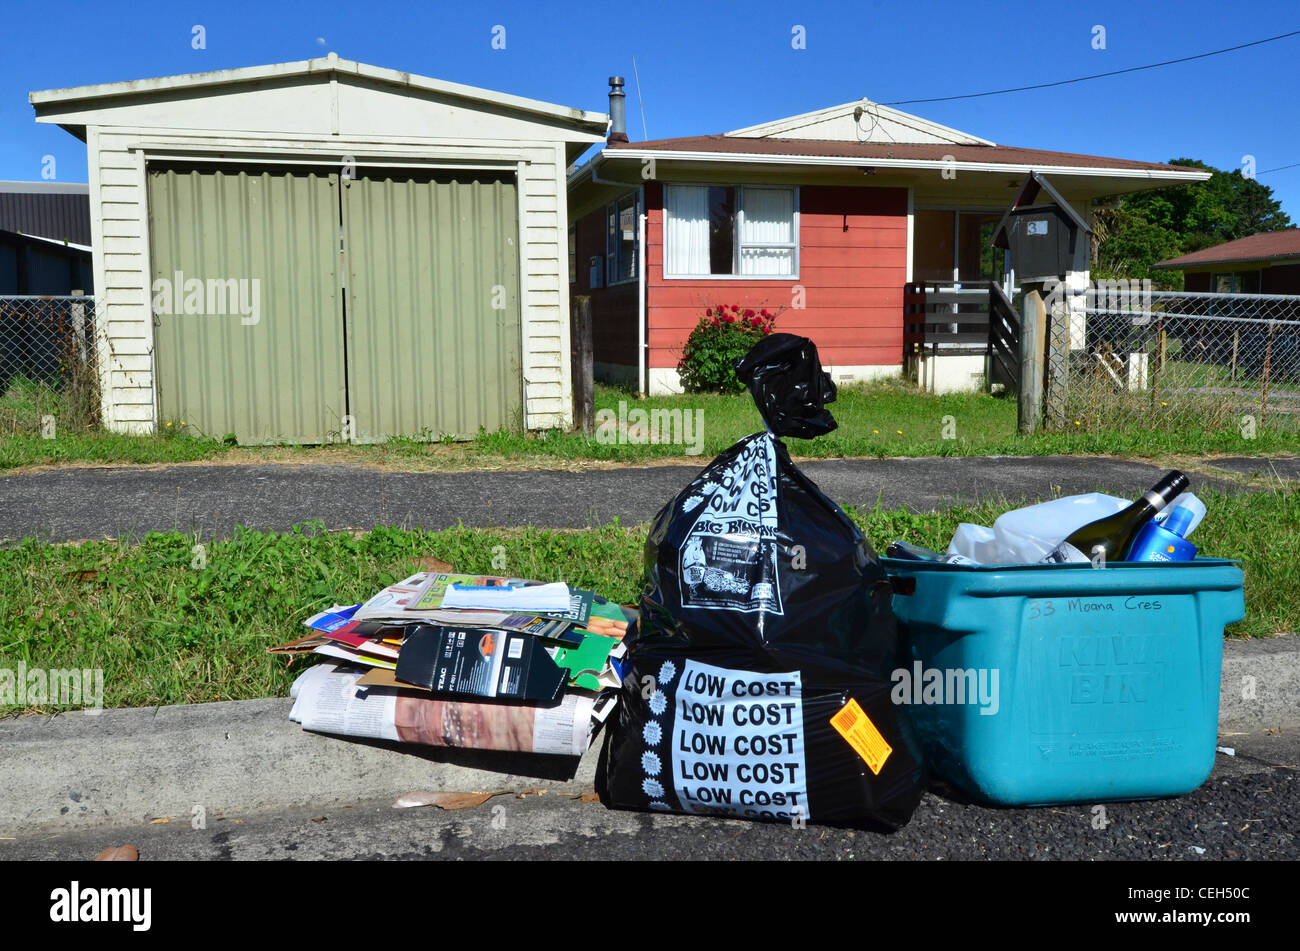 Recycling day in a small town. - Stock Image